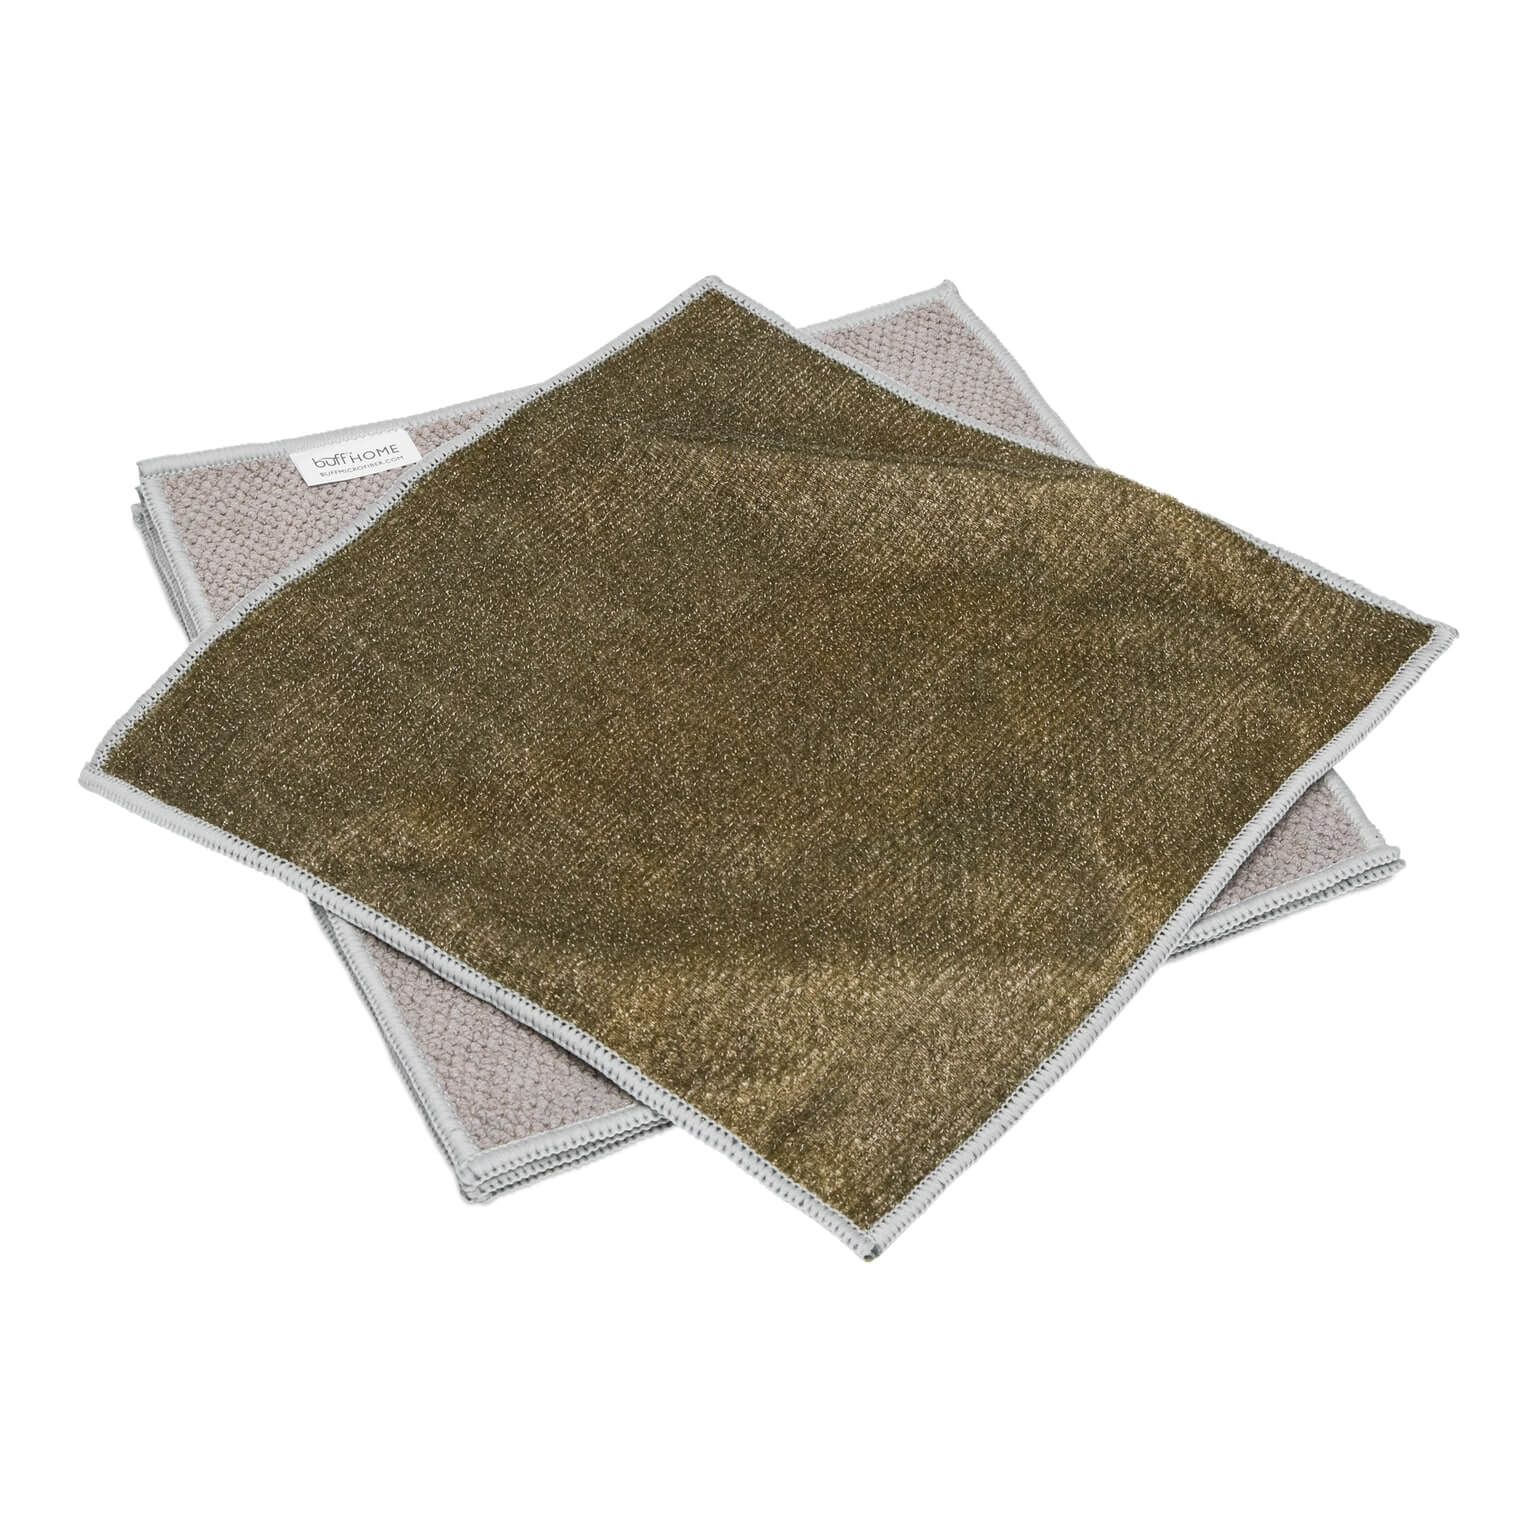 Dual Sided Microfiber Dish Cloths